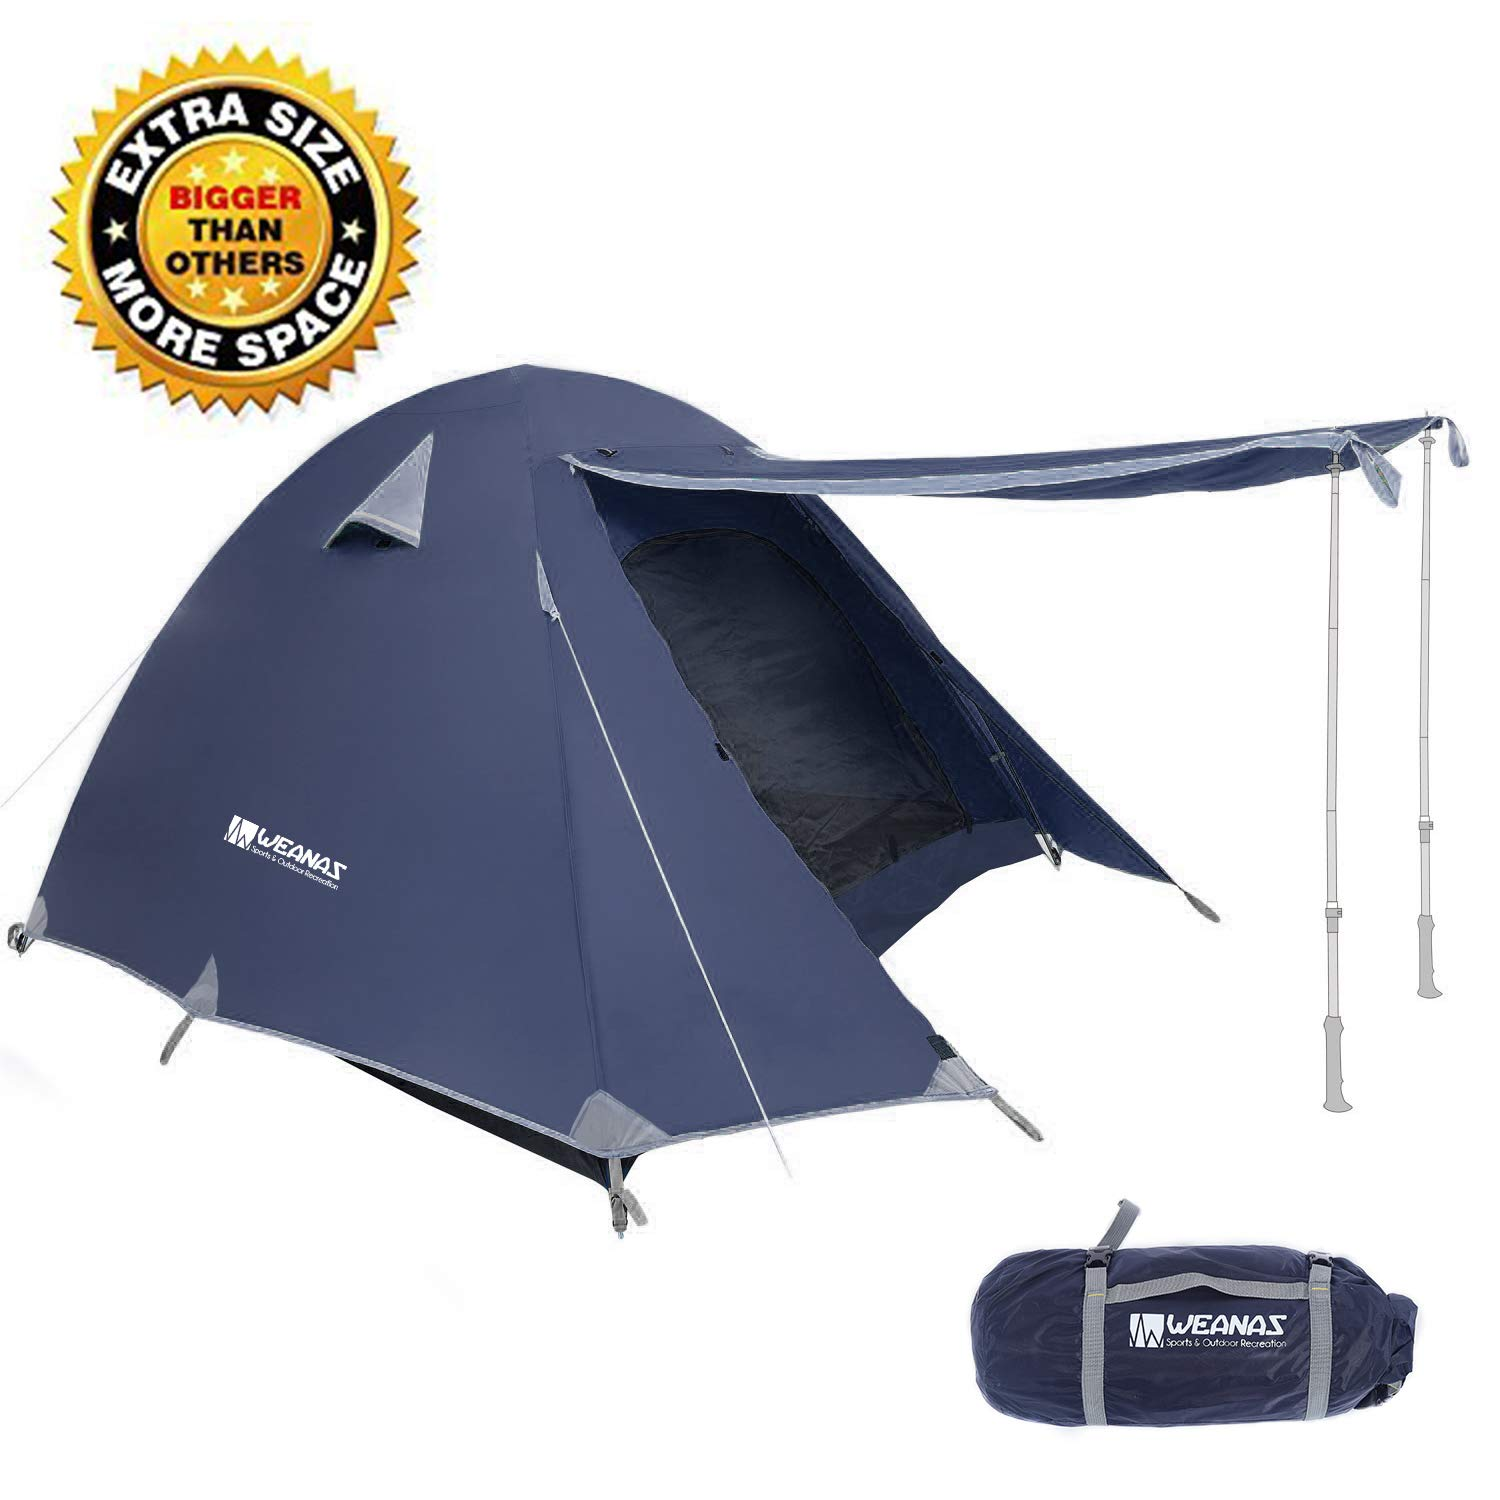 Weanas Professional Backpacking Tent 2 3 4 Person 3 Season Weatherproof Double Layer Large Space Aluminum Rod for Outdoor Family Camping Hunting Hiking Adventure Travel (Extra Size Navy, 1-2 Person) by Weanas